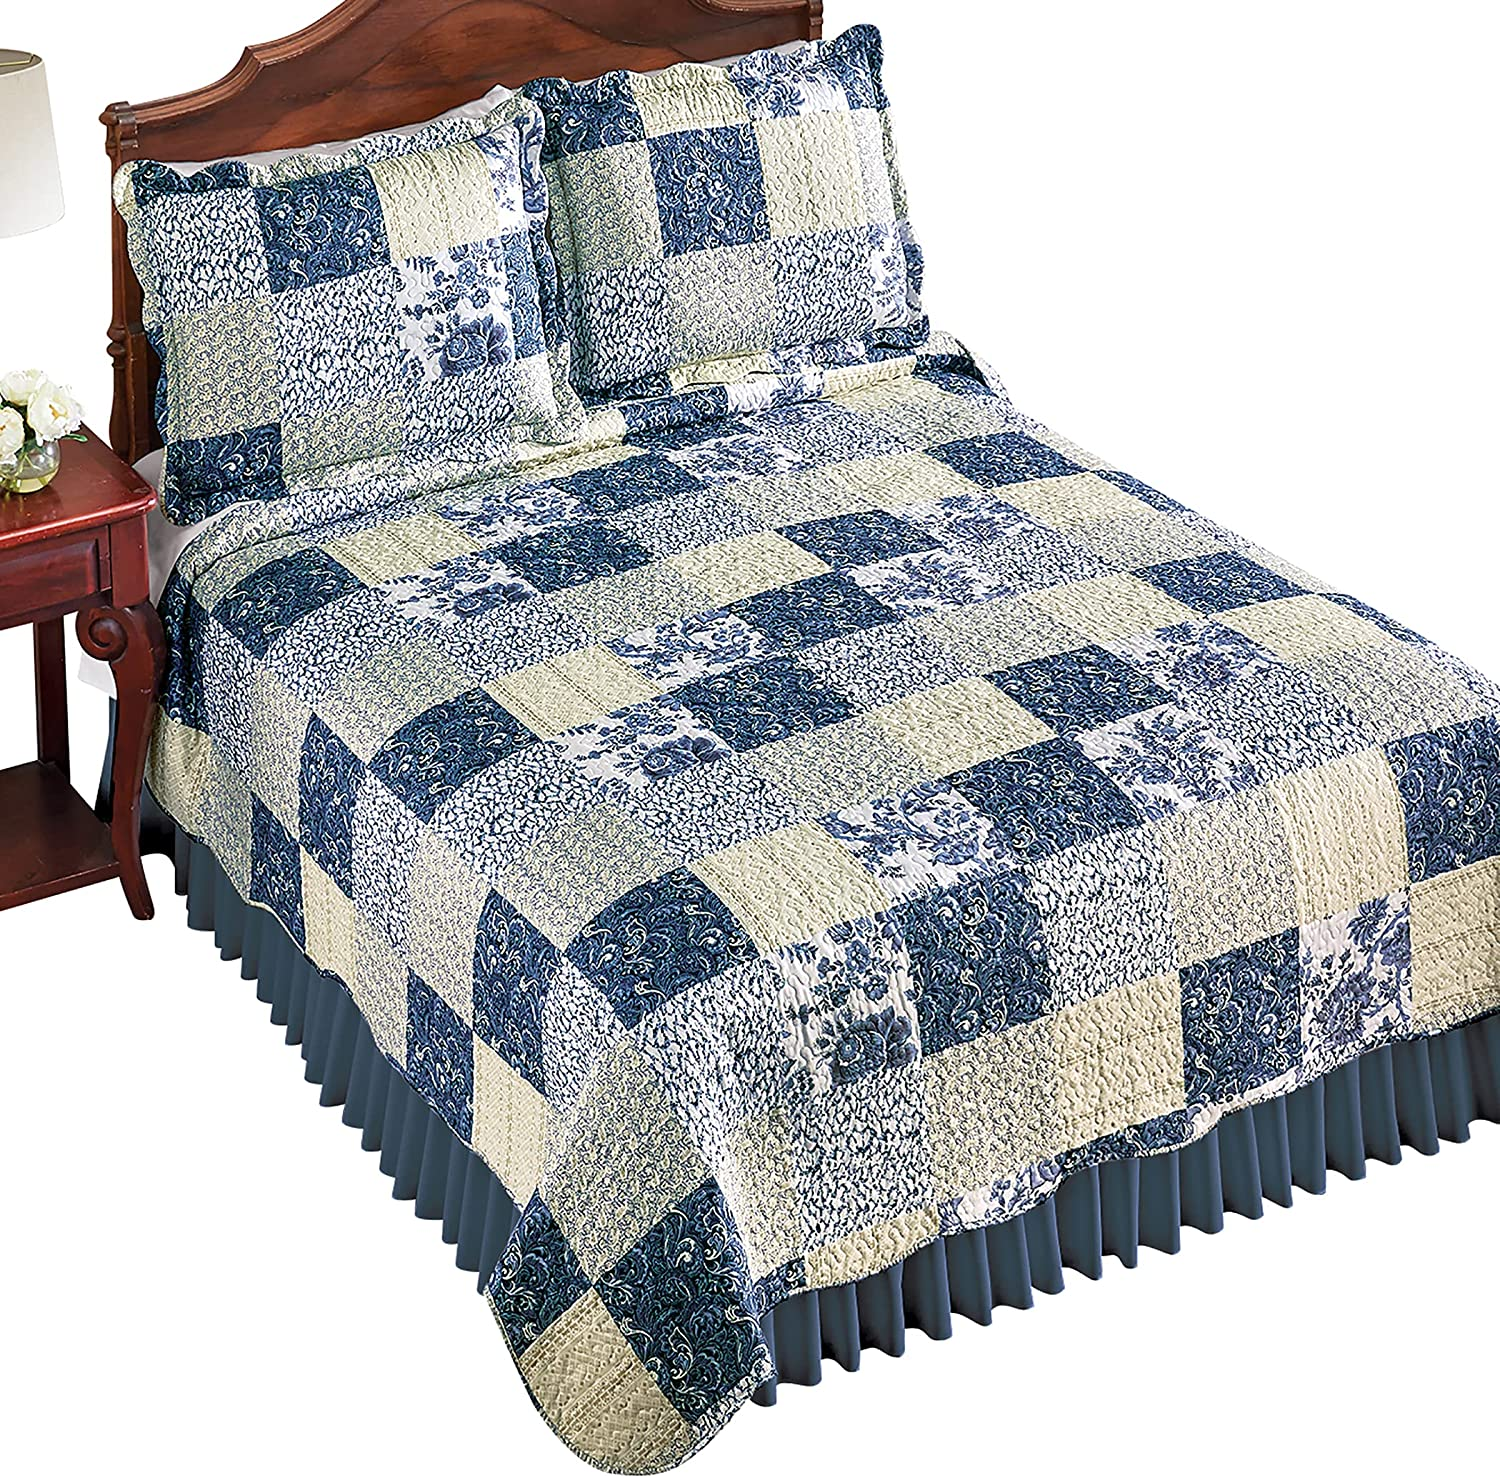 Floral Paisley Pattern Quilt Printed Patchwork Limited price sale Max 55% OFF